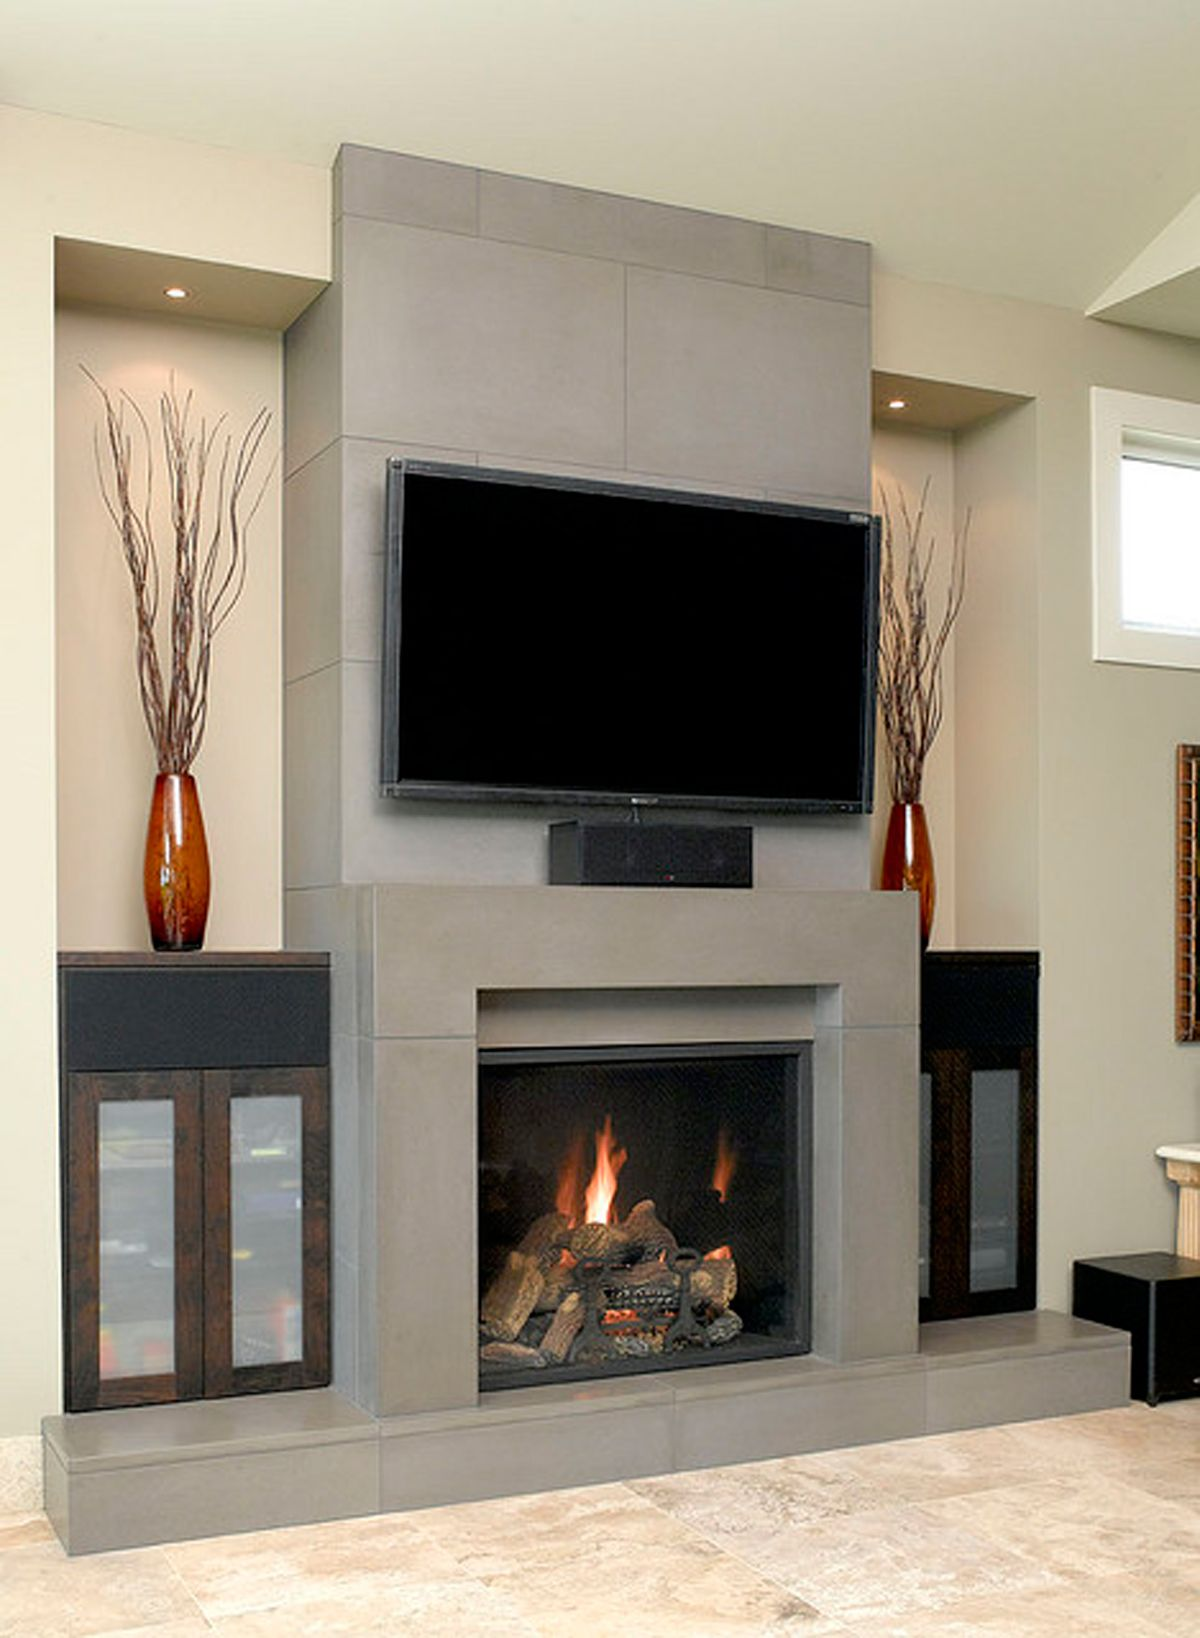 Designs fireplaces advise to wear in on every day in 2019